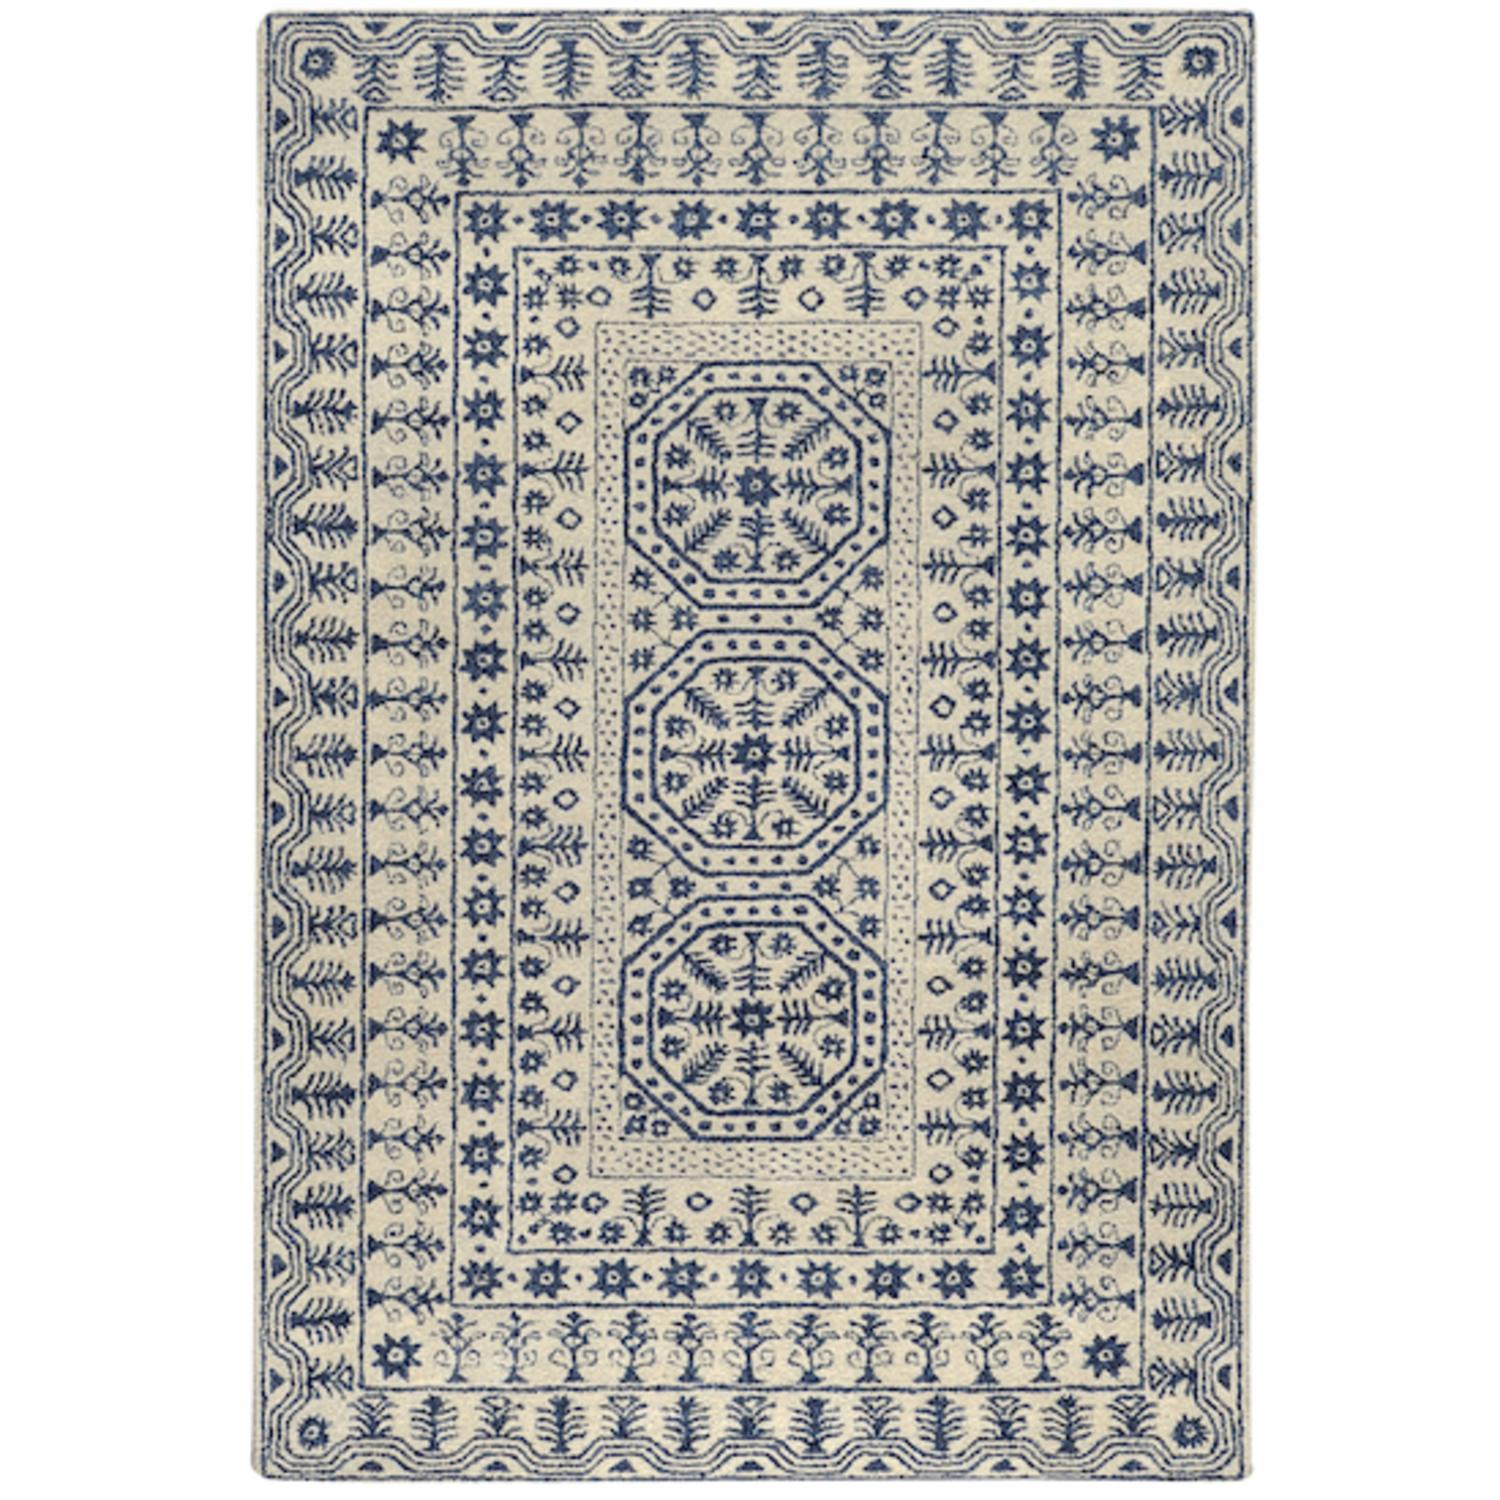 9' x 13' Fields of Joy Navy Blue and Ivory Wool Area Throw Rug